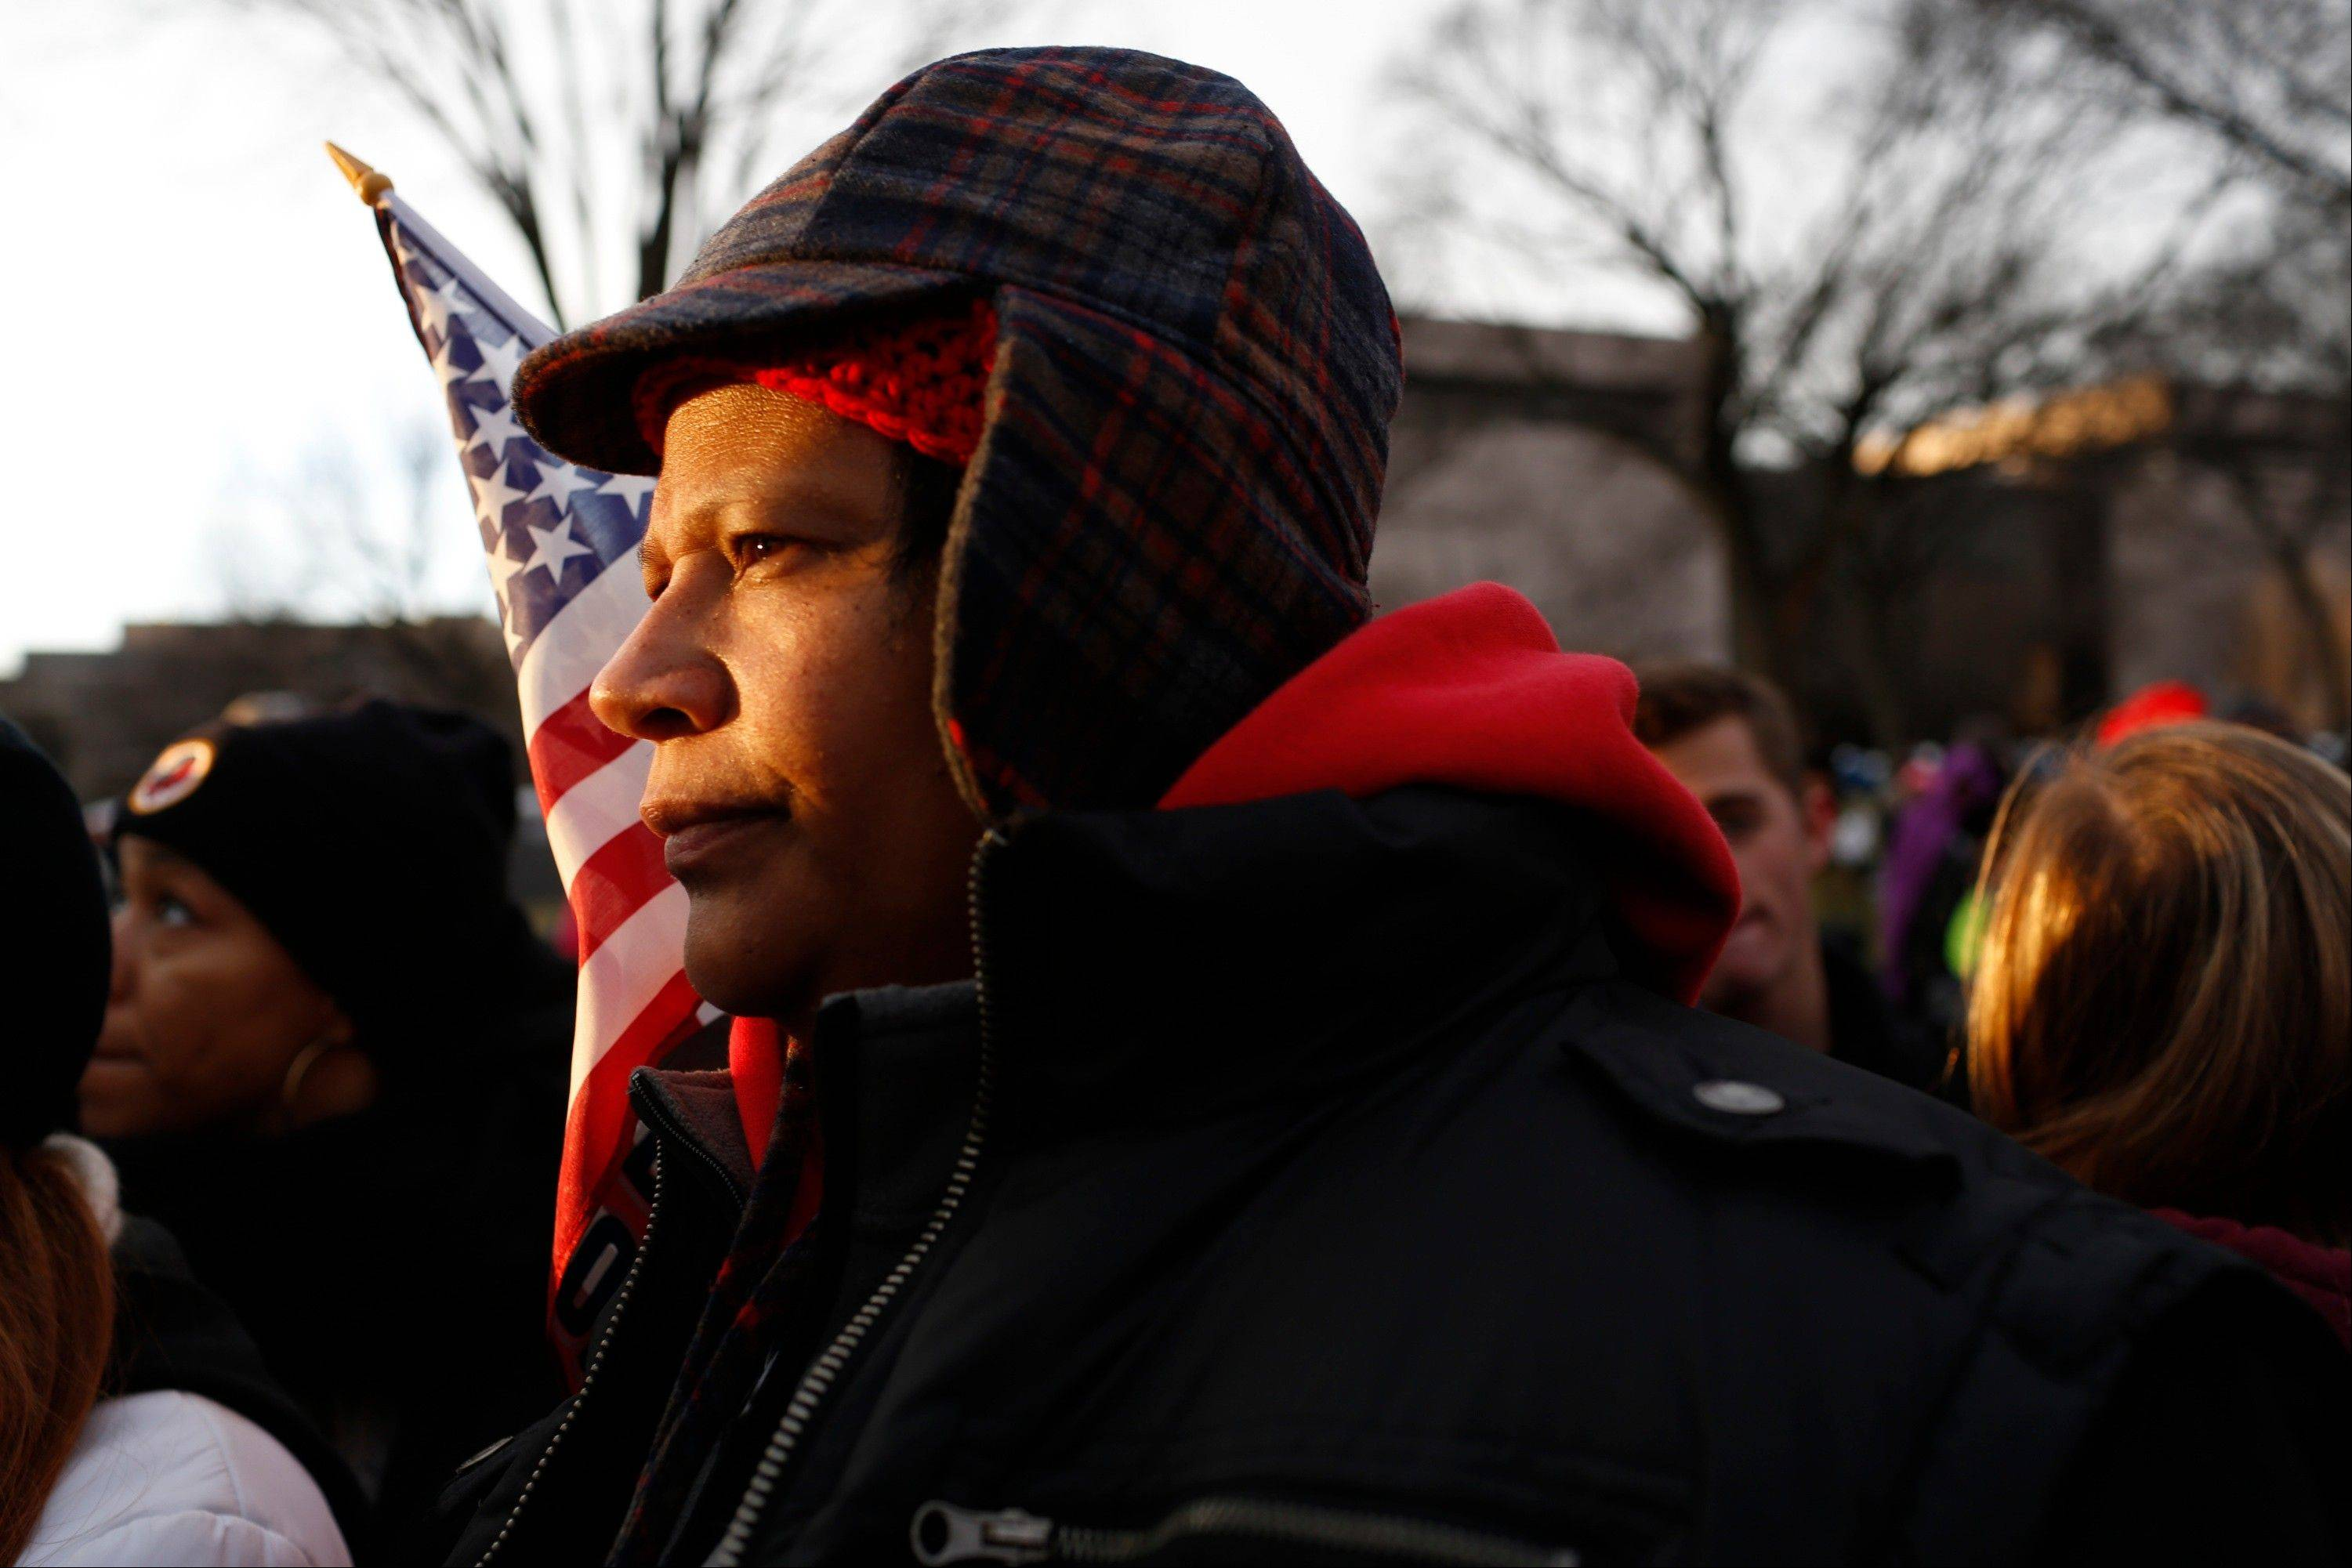 The sun shines on the face of an attendee before the start of the U.S. presidential inauguration in Washington, D.C., U.S., on Monday, Jan. 21, 2013.